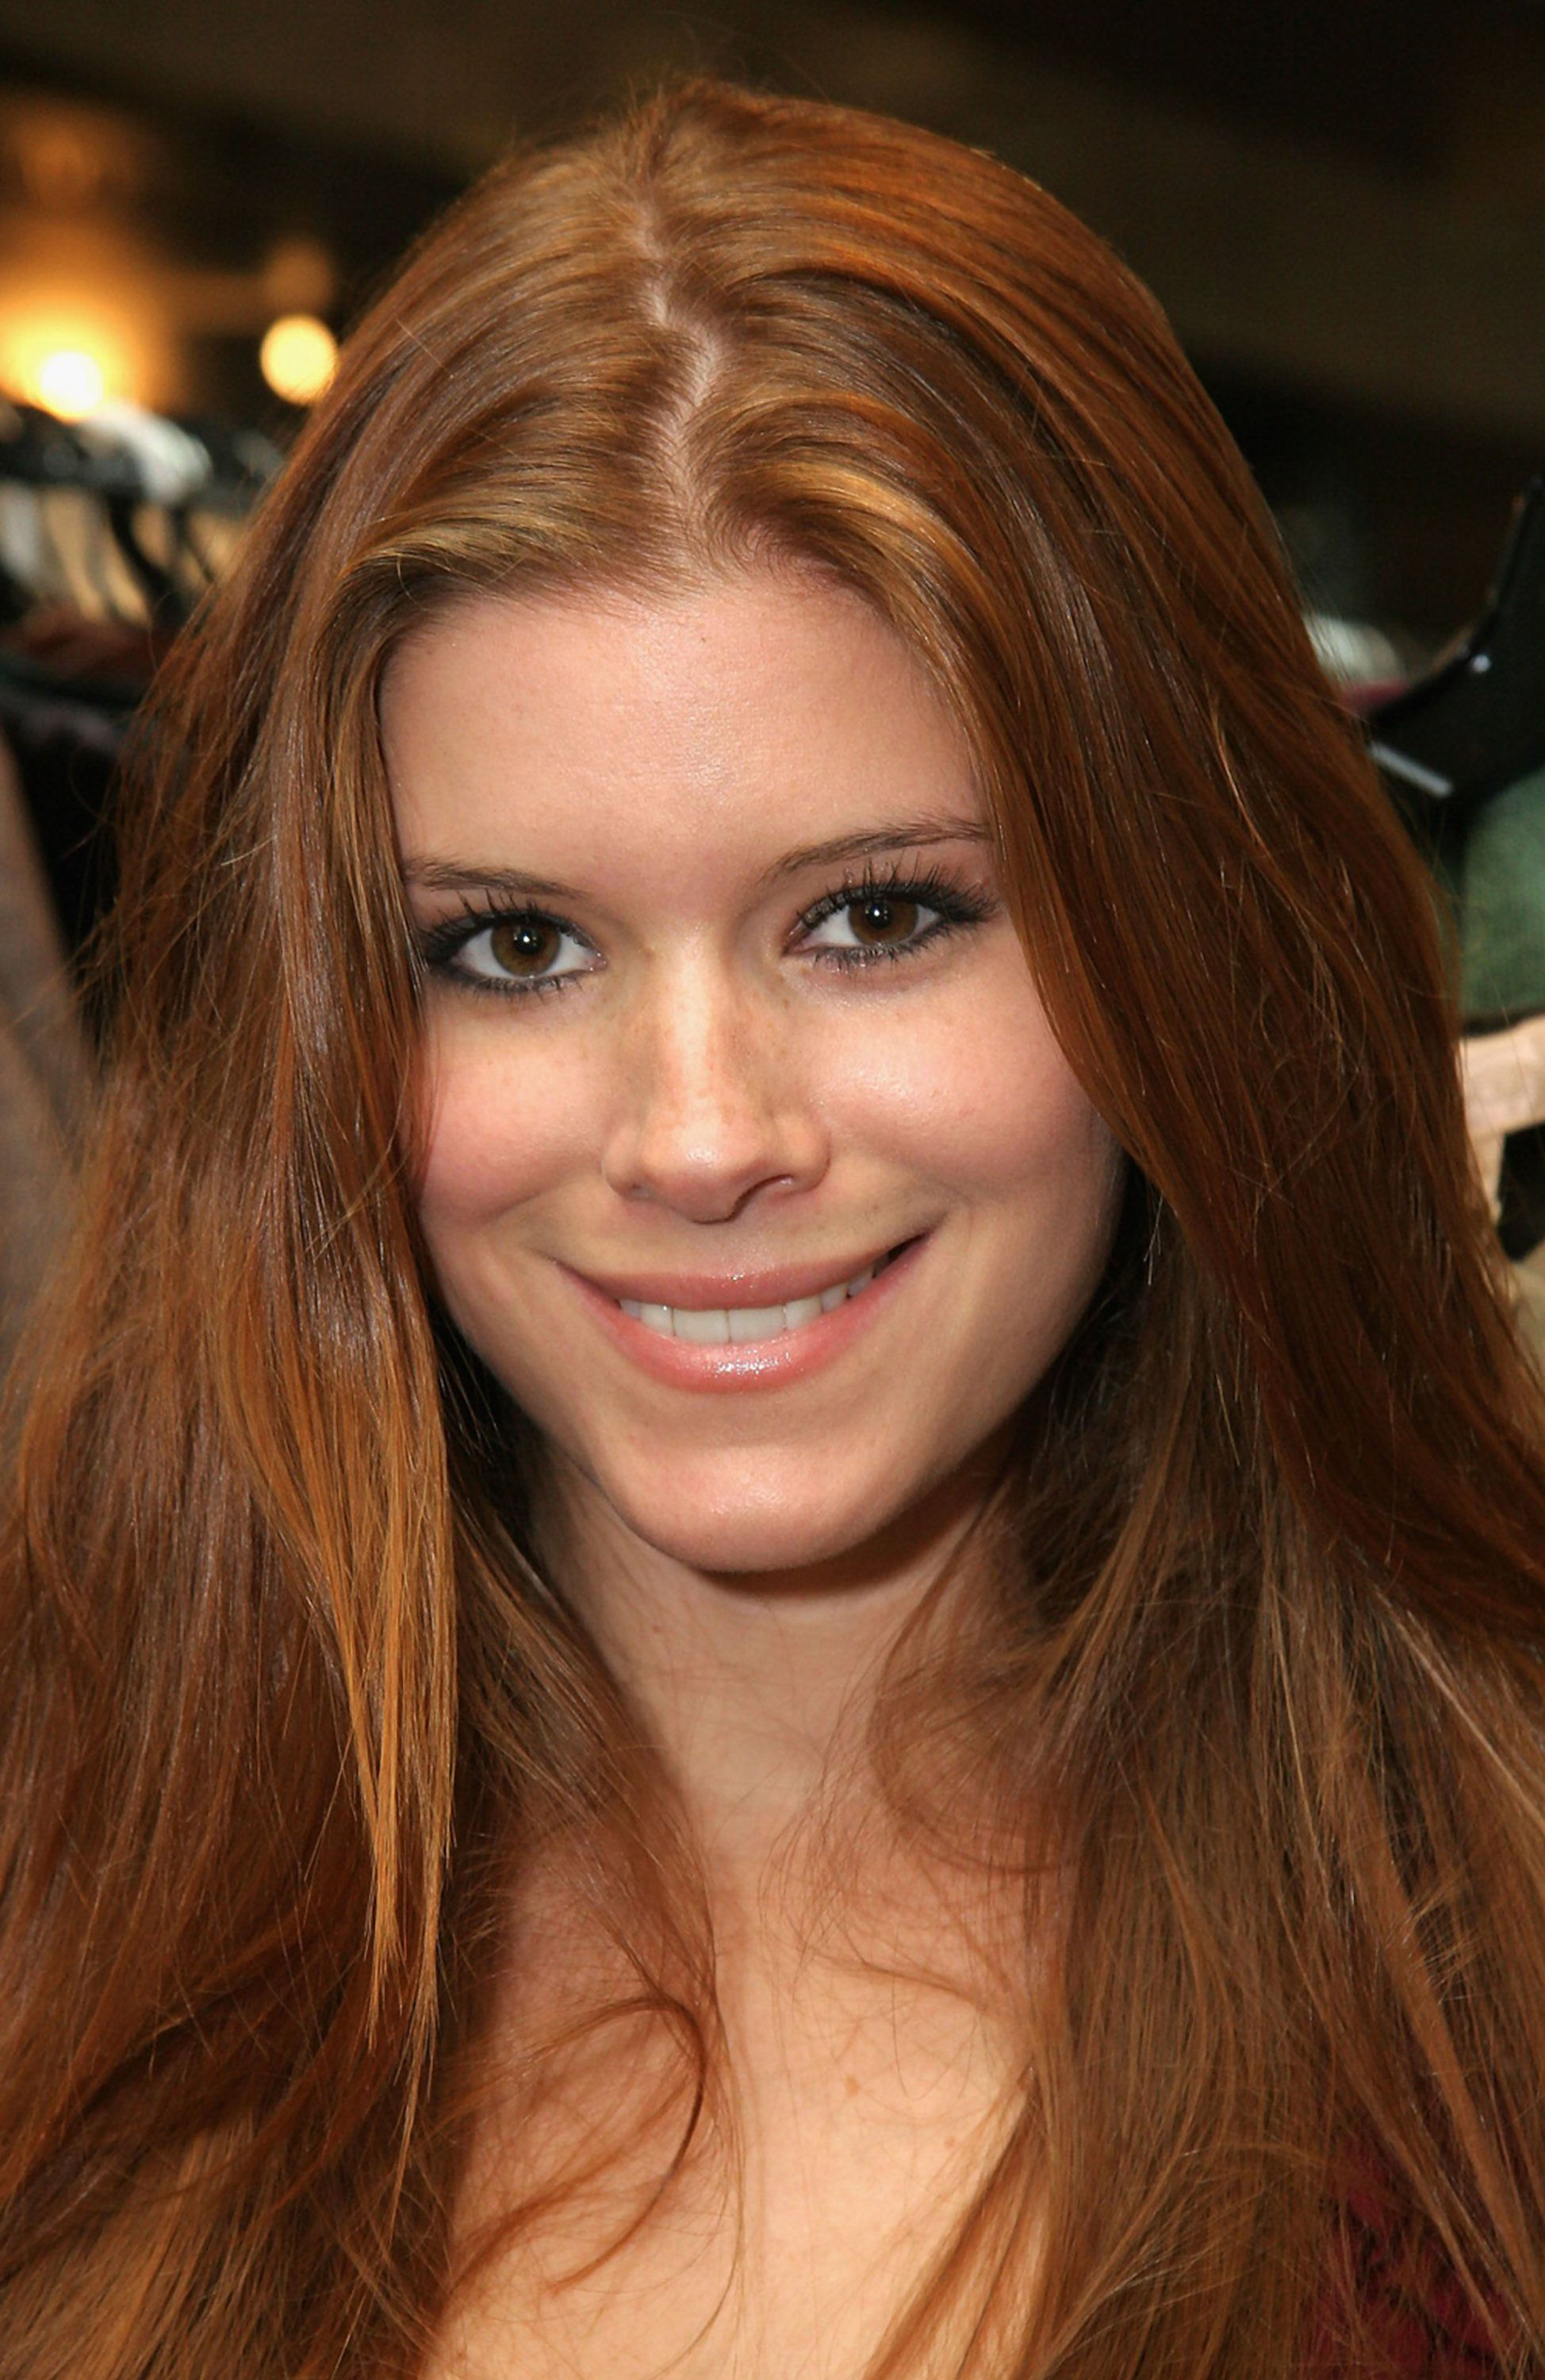 Hacked Kate Mara nudes (91 photos), Ass, Leaked, Twitter, legs 2015